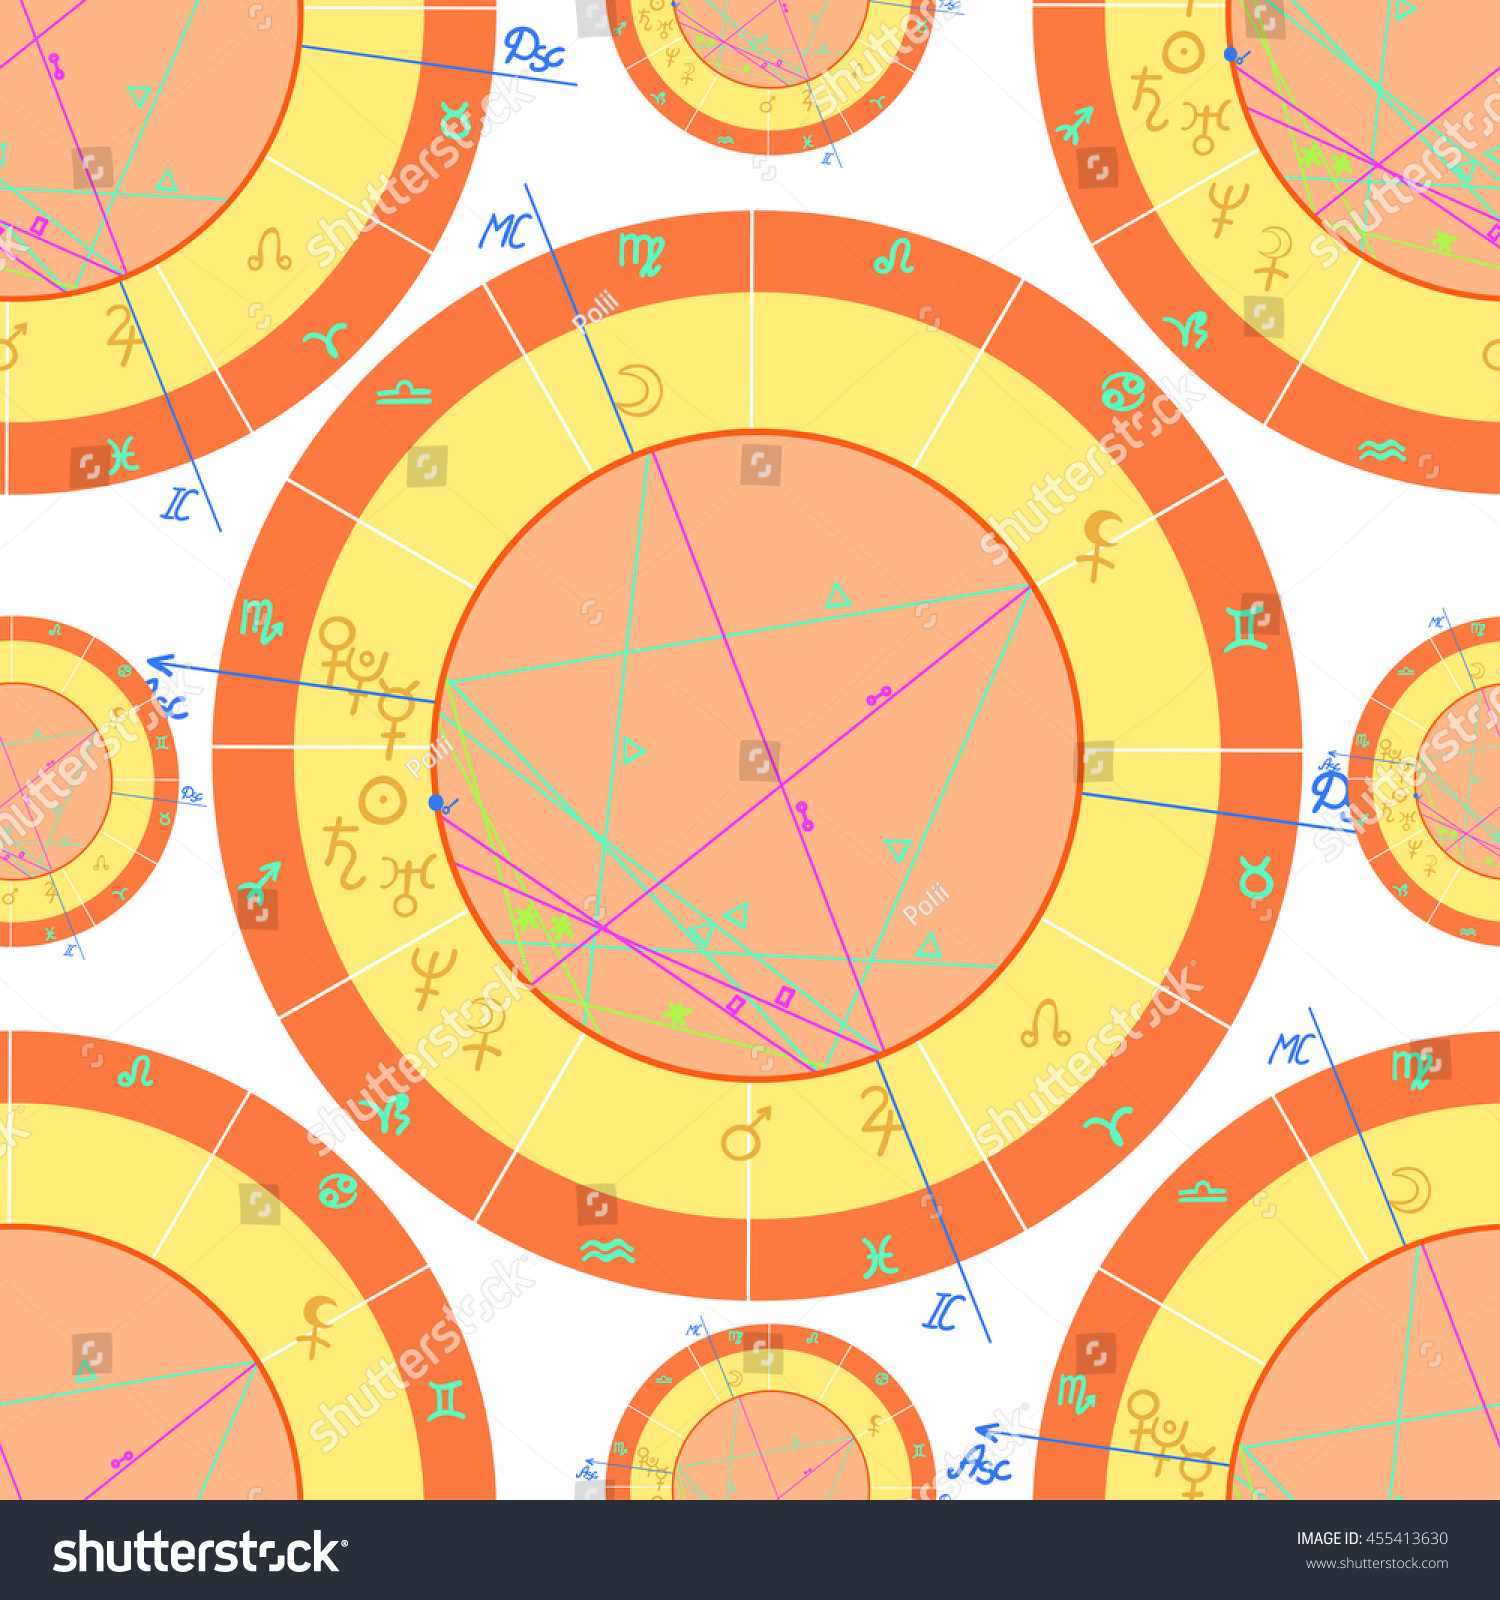 Paul mccartney birth chart gallery free any chart examples astrological charts image collections free any chart examples seamless pattern orange natal astrological charts stock vector nvjuhfo Choice Image